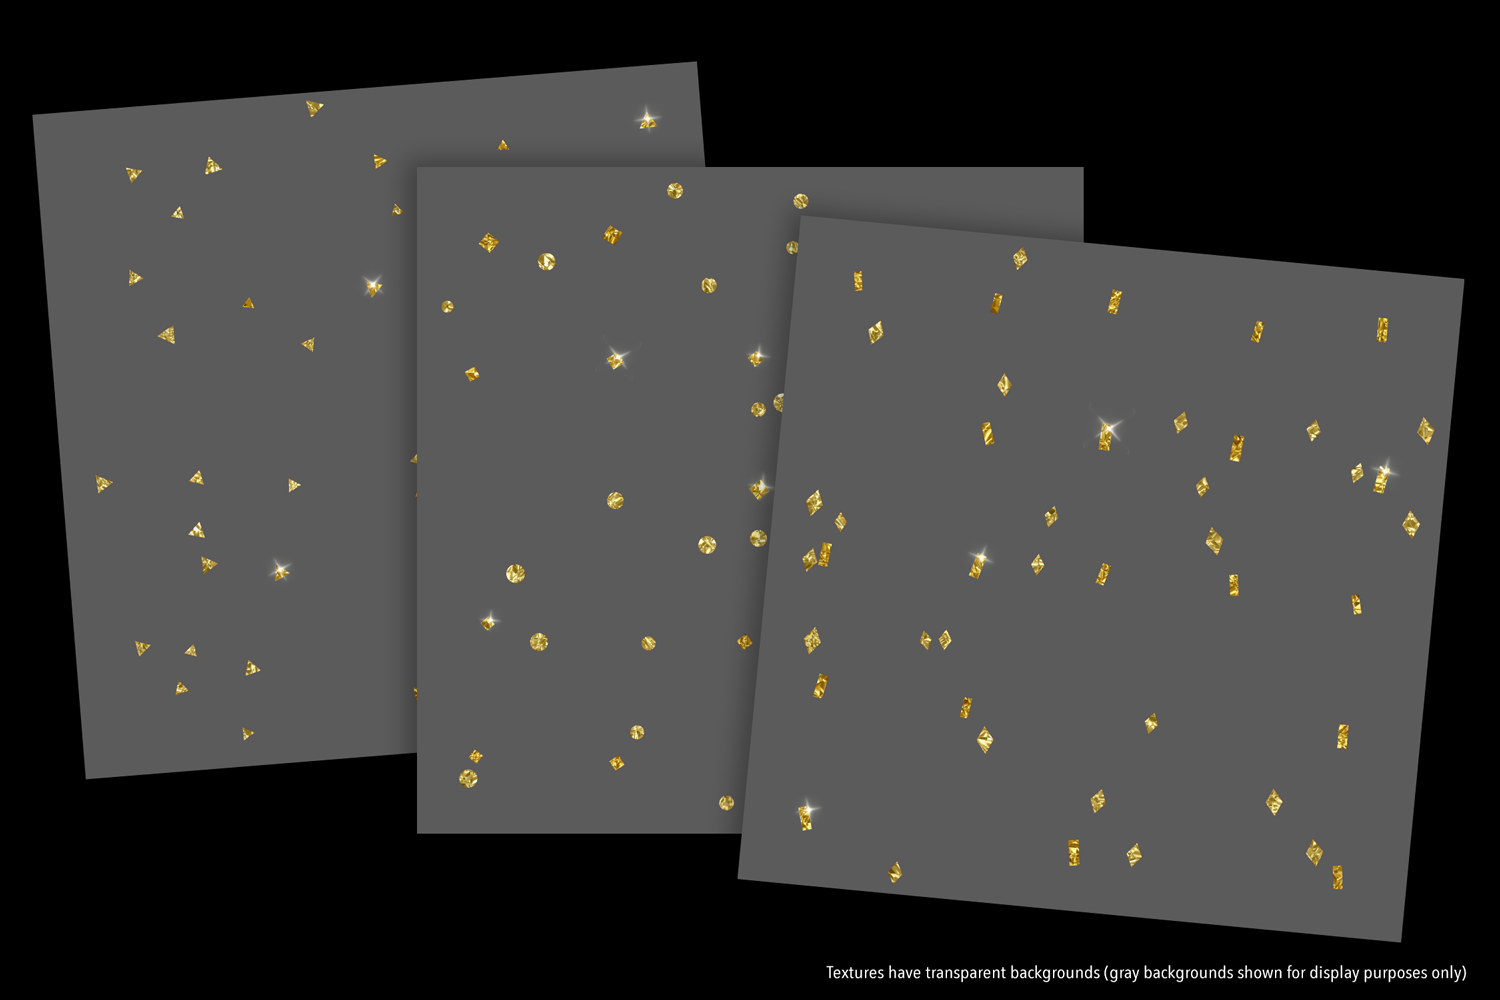 Sparkly Gold Confetti (Sparse) - transparent backgrounds example image 6